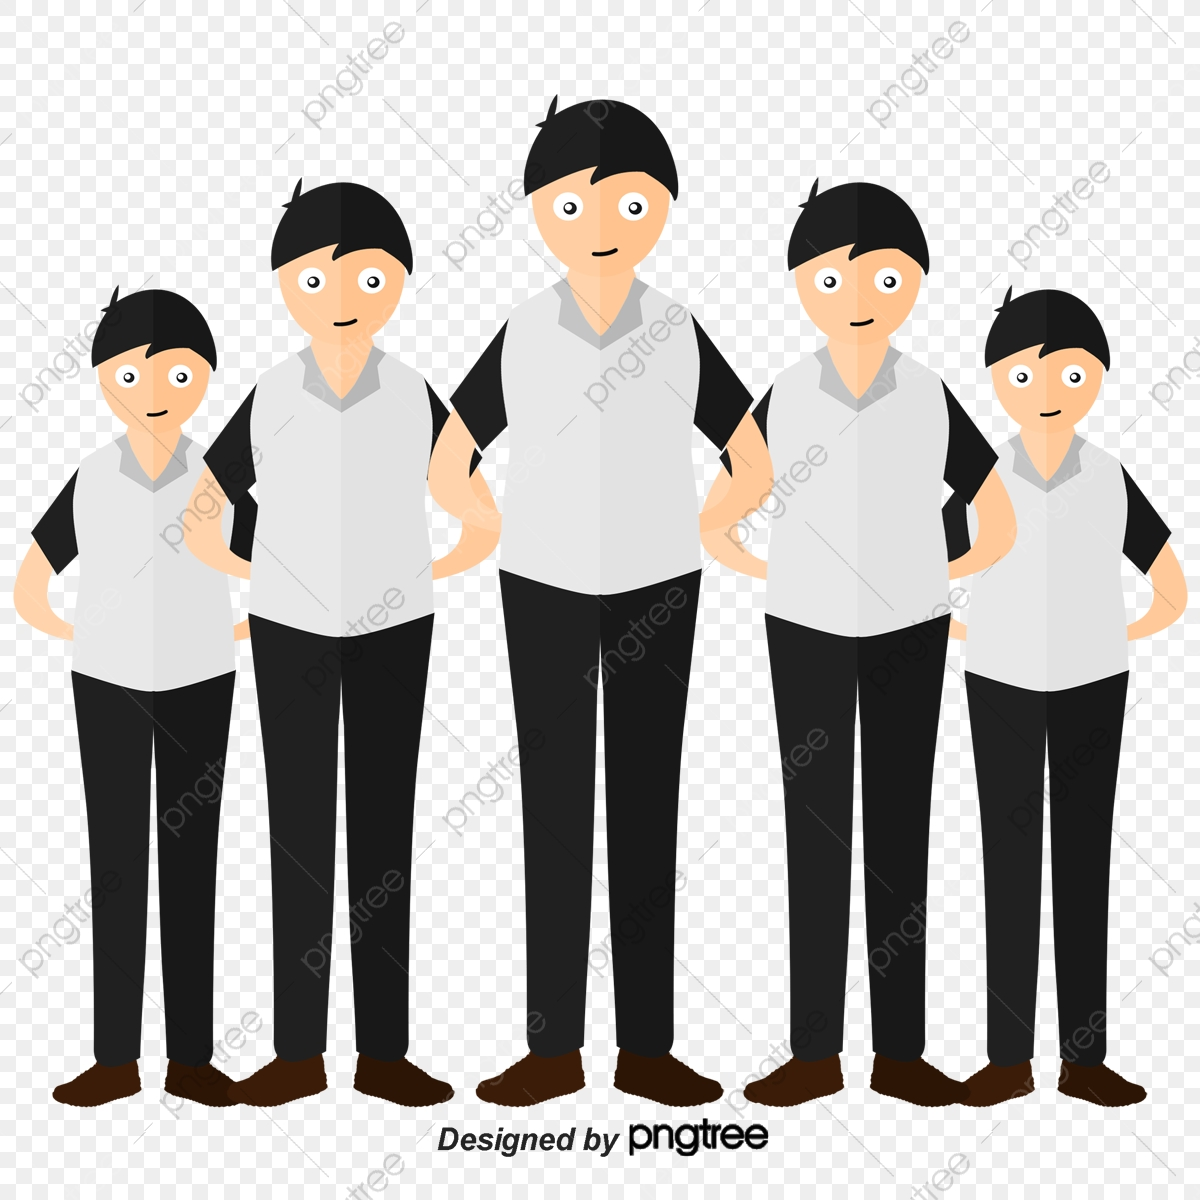 Working Staff, White Collar, Staff, Crowd PNG and Vector.